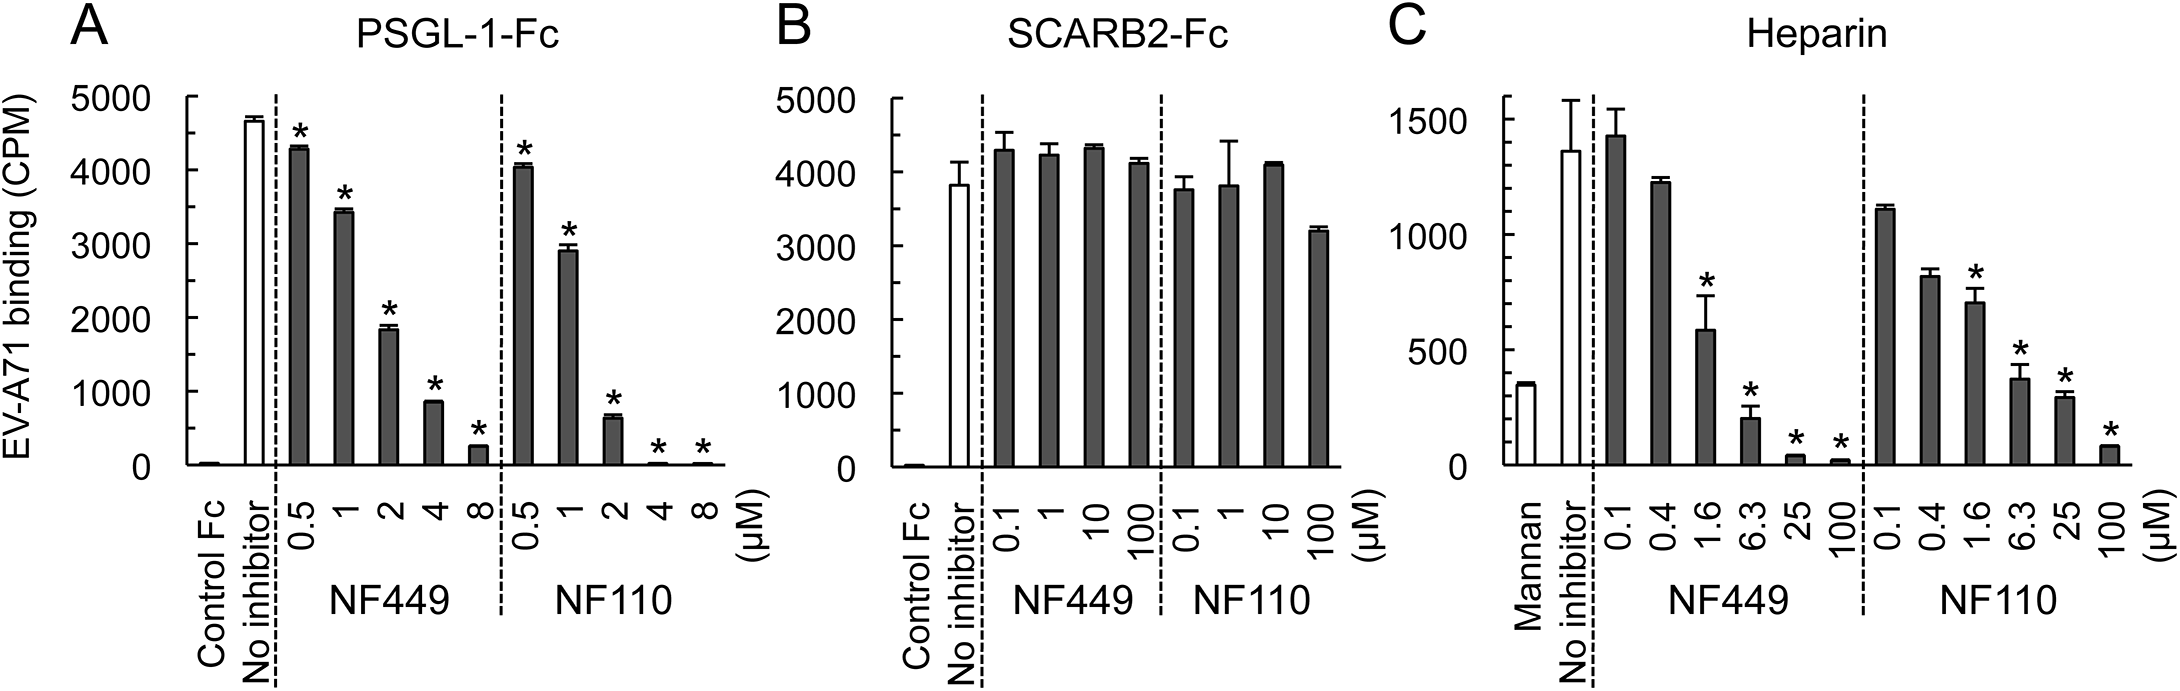 NF449 and NF110 inhibit EV-A71 attachment to PSGL-1 and heparin, but not SCARB2.